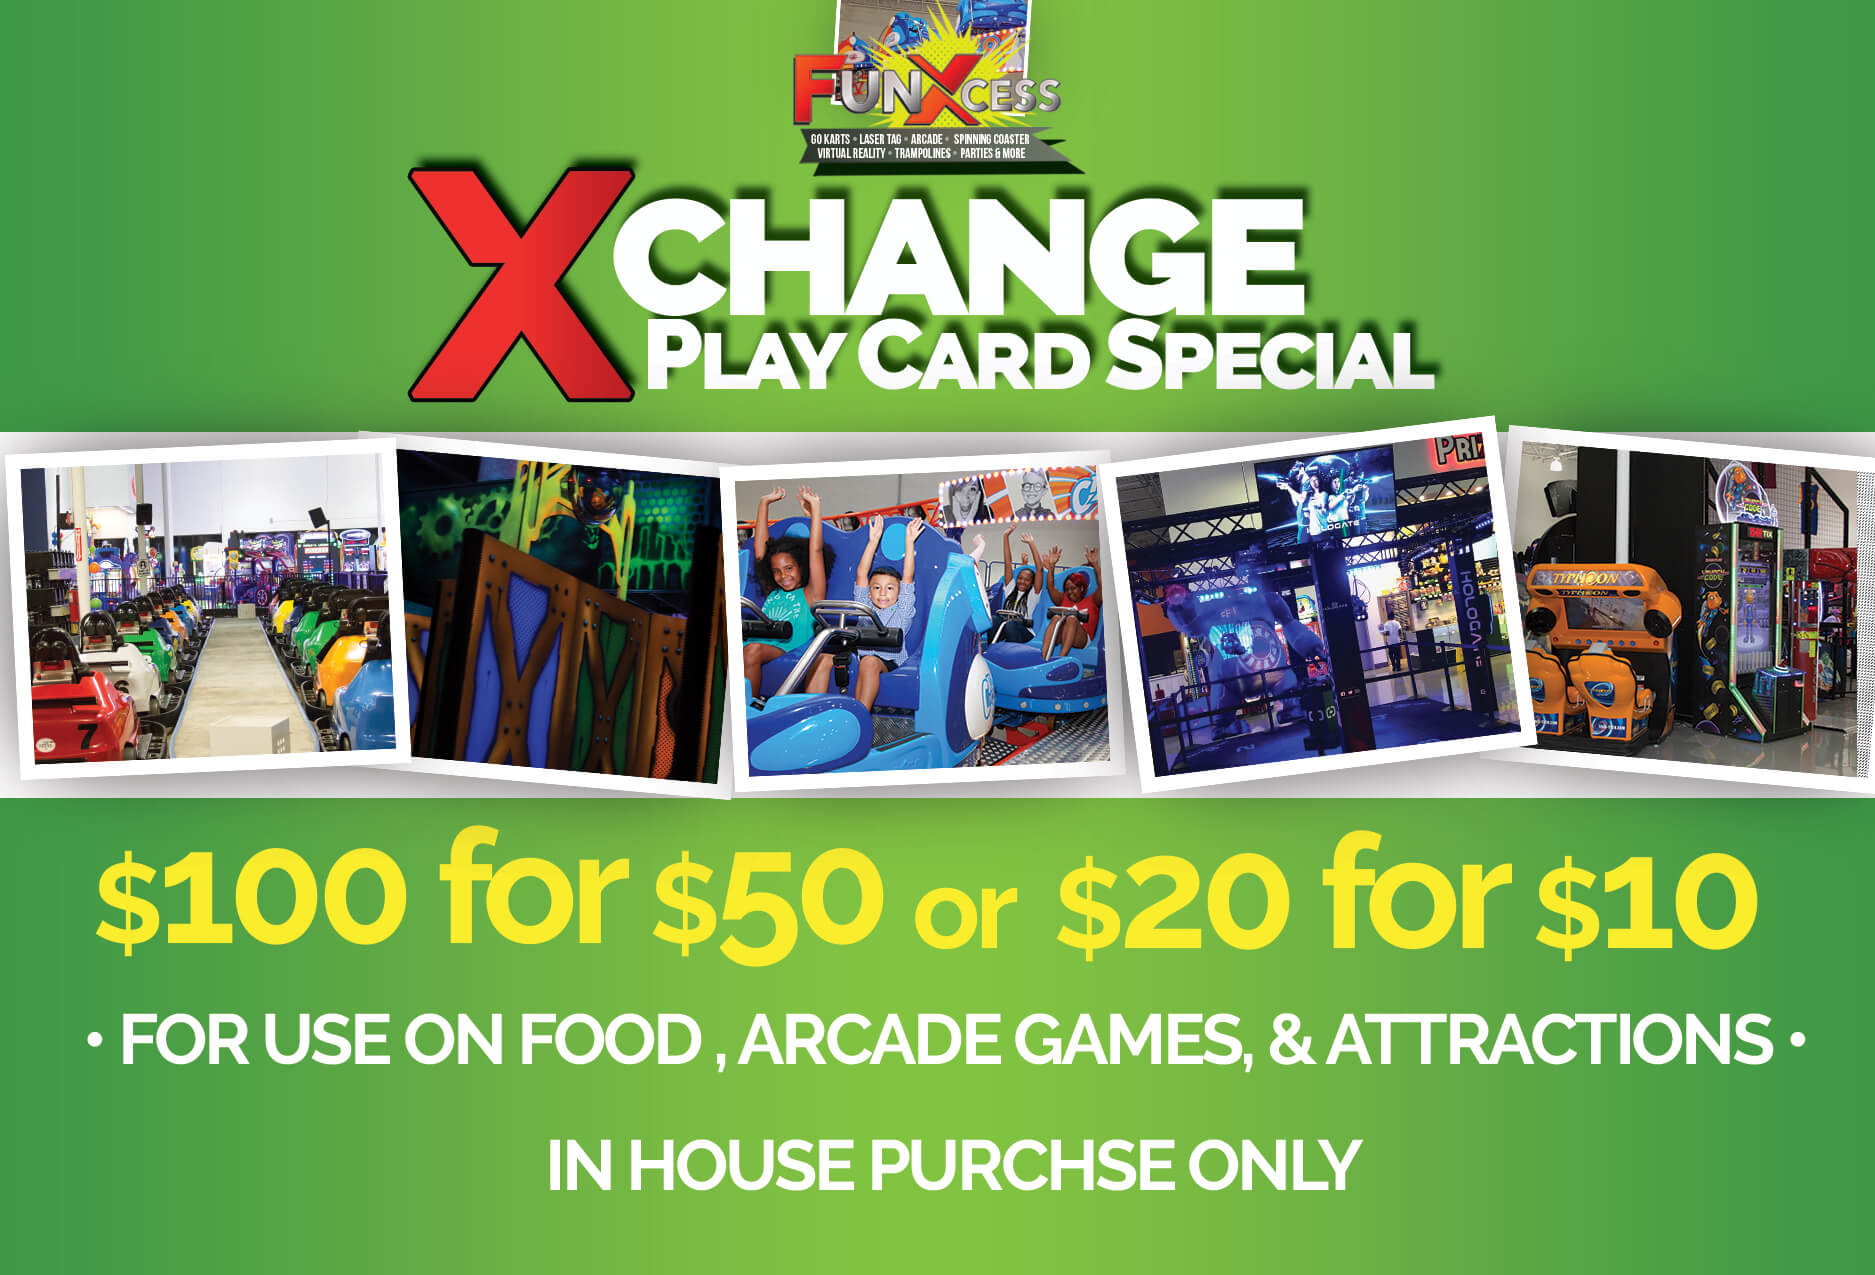 XChange Play Card Special